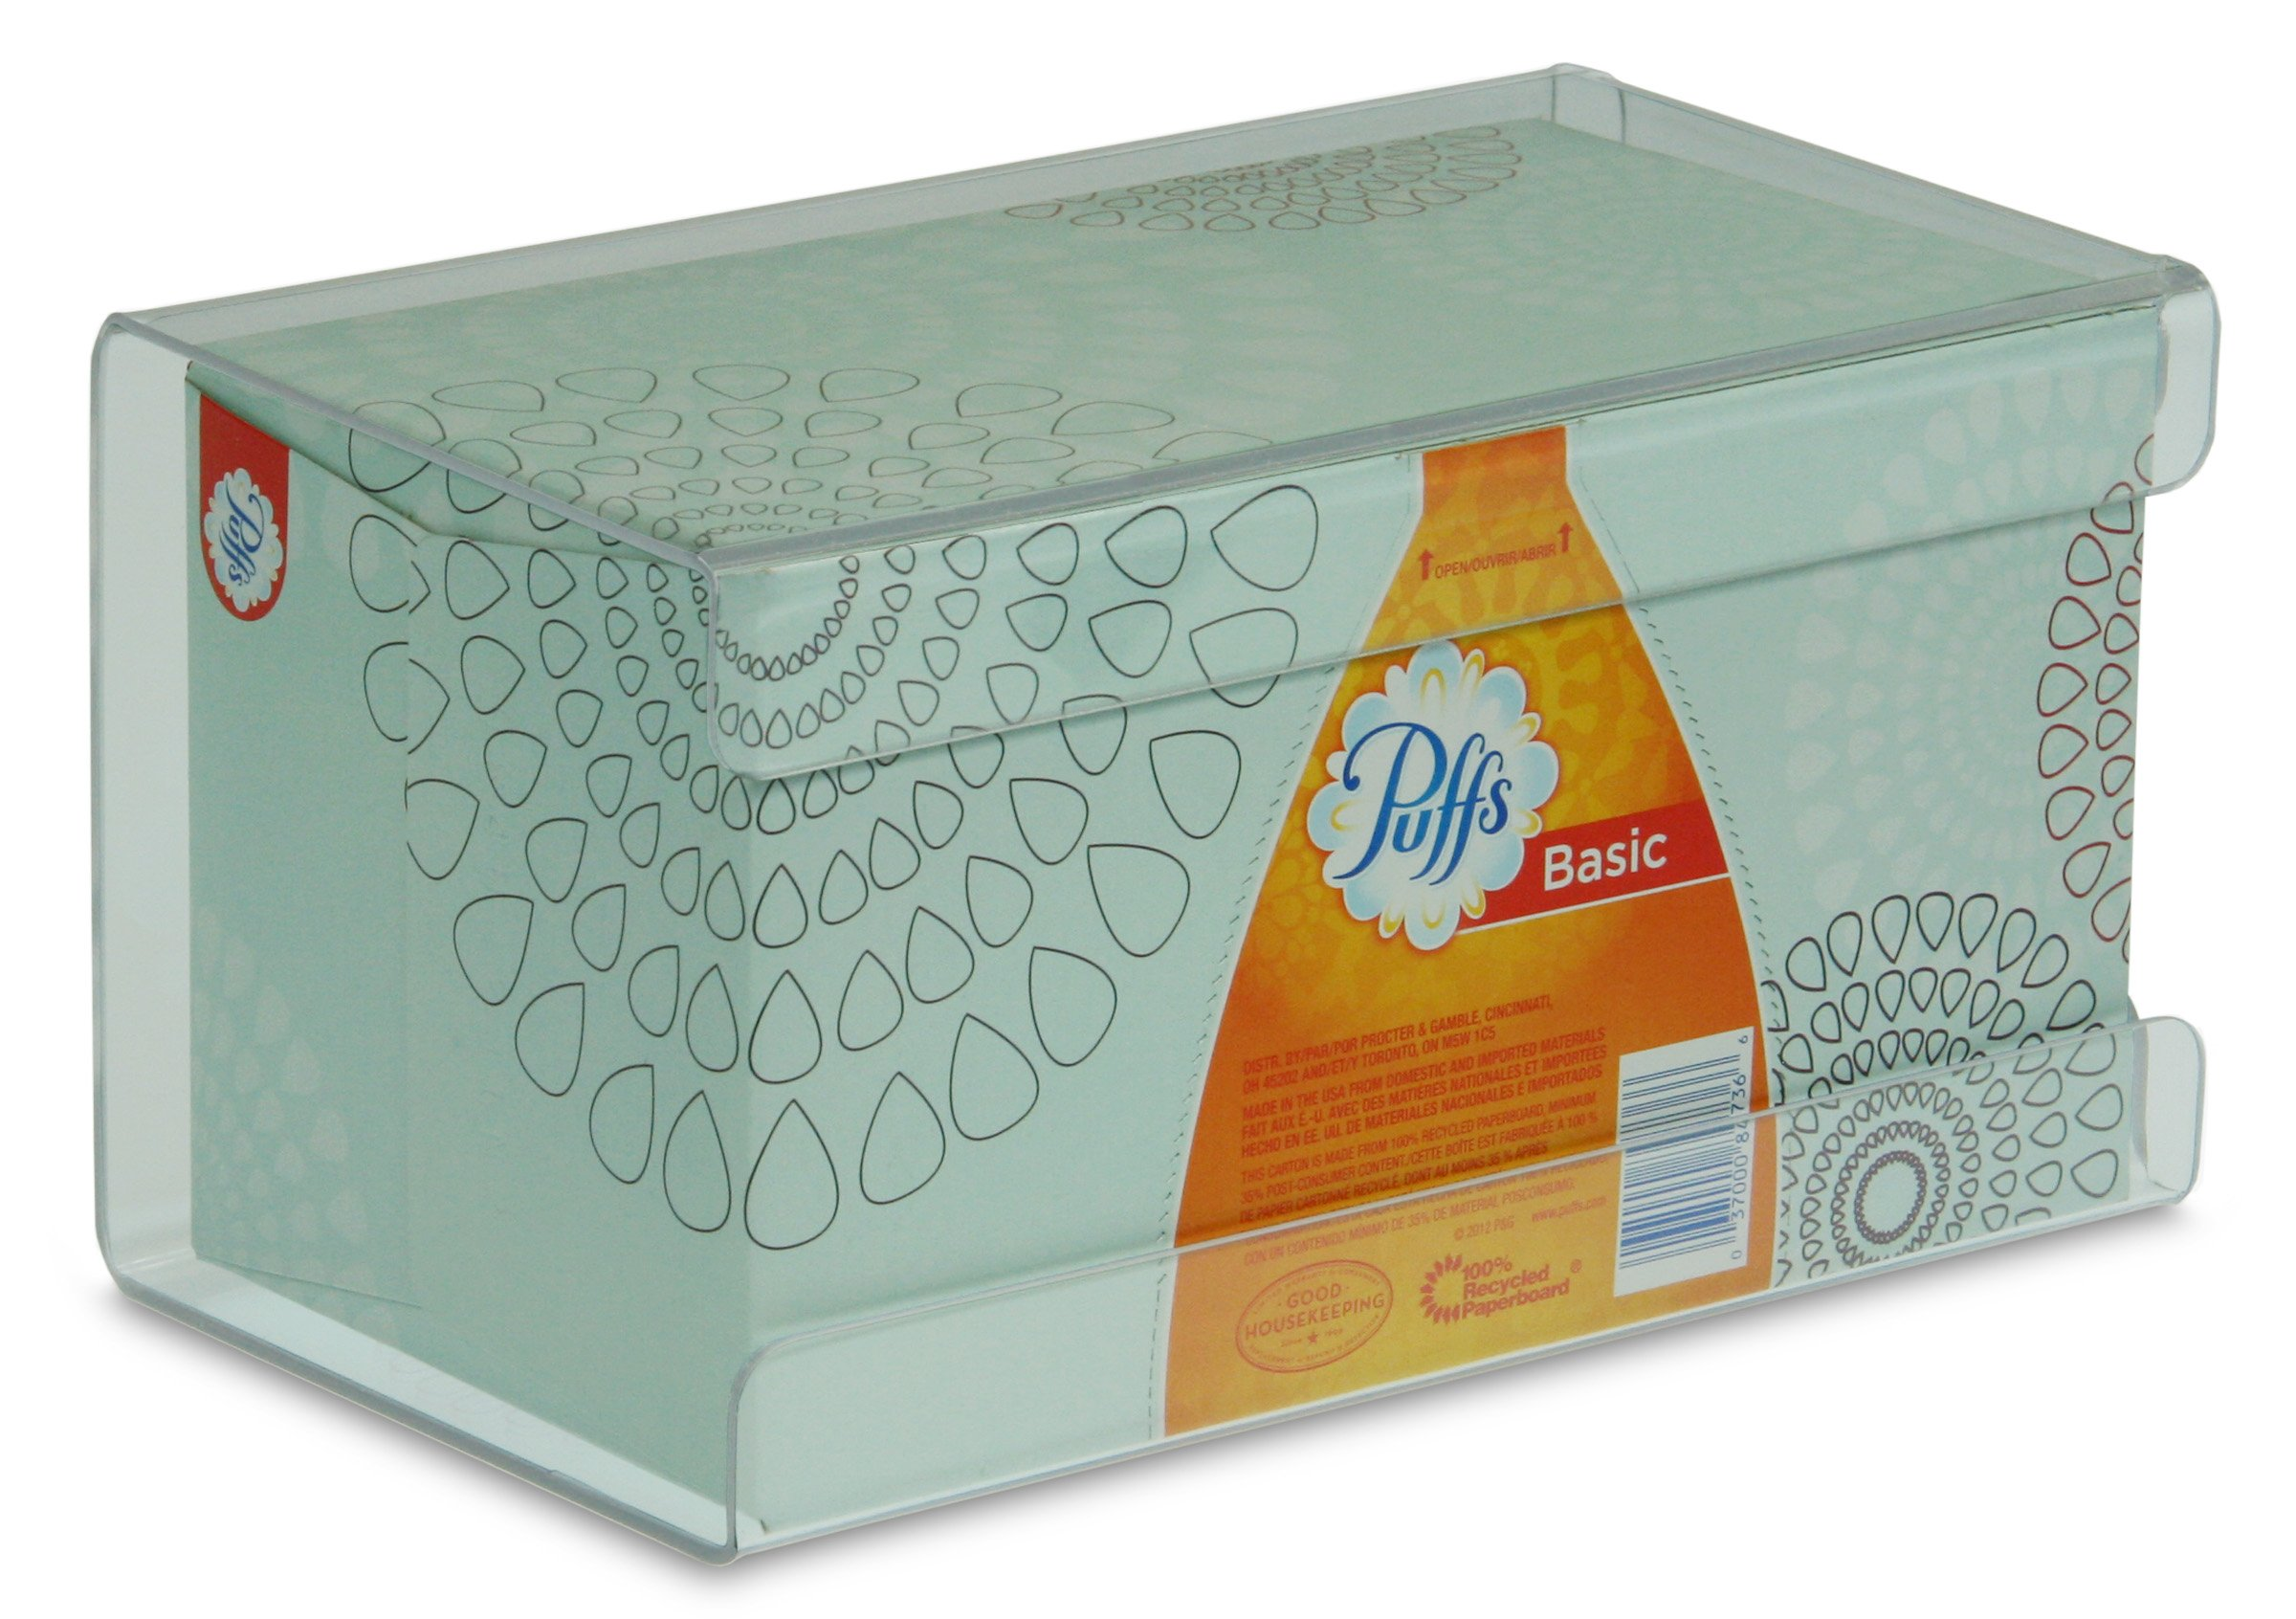 "TrippNT 51140 Plastic Wall Mountable Kleenex Box Holder, 9-1/2"" Width x 5-1/4"" Height x 5"" Depth, Large, Clear"